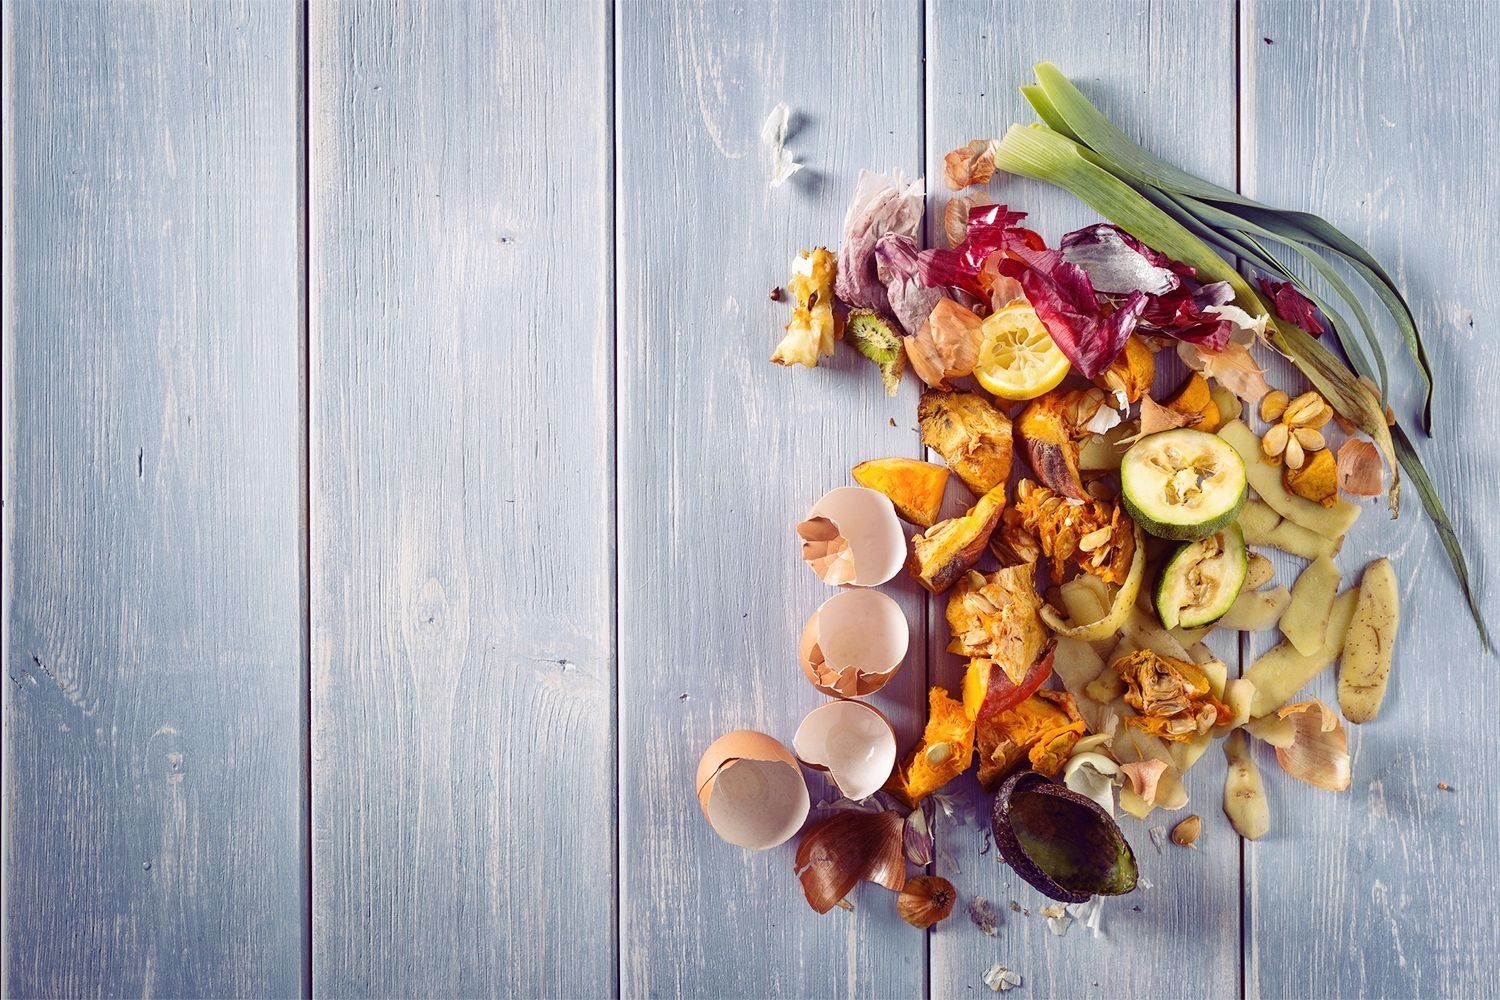 The Problem with Food Waste